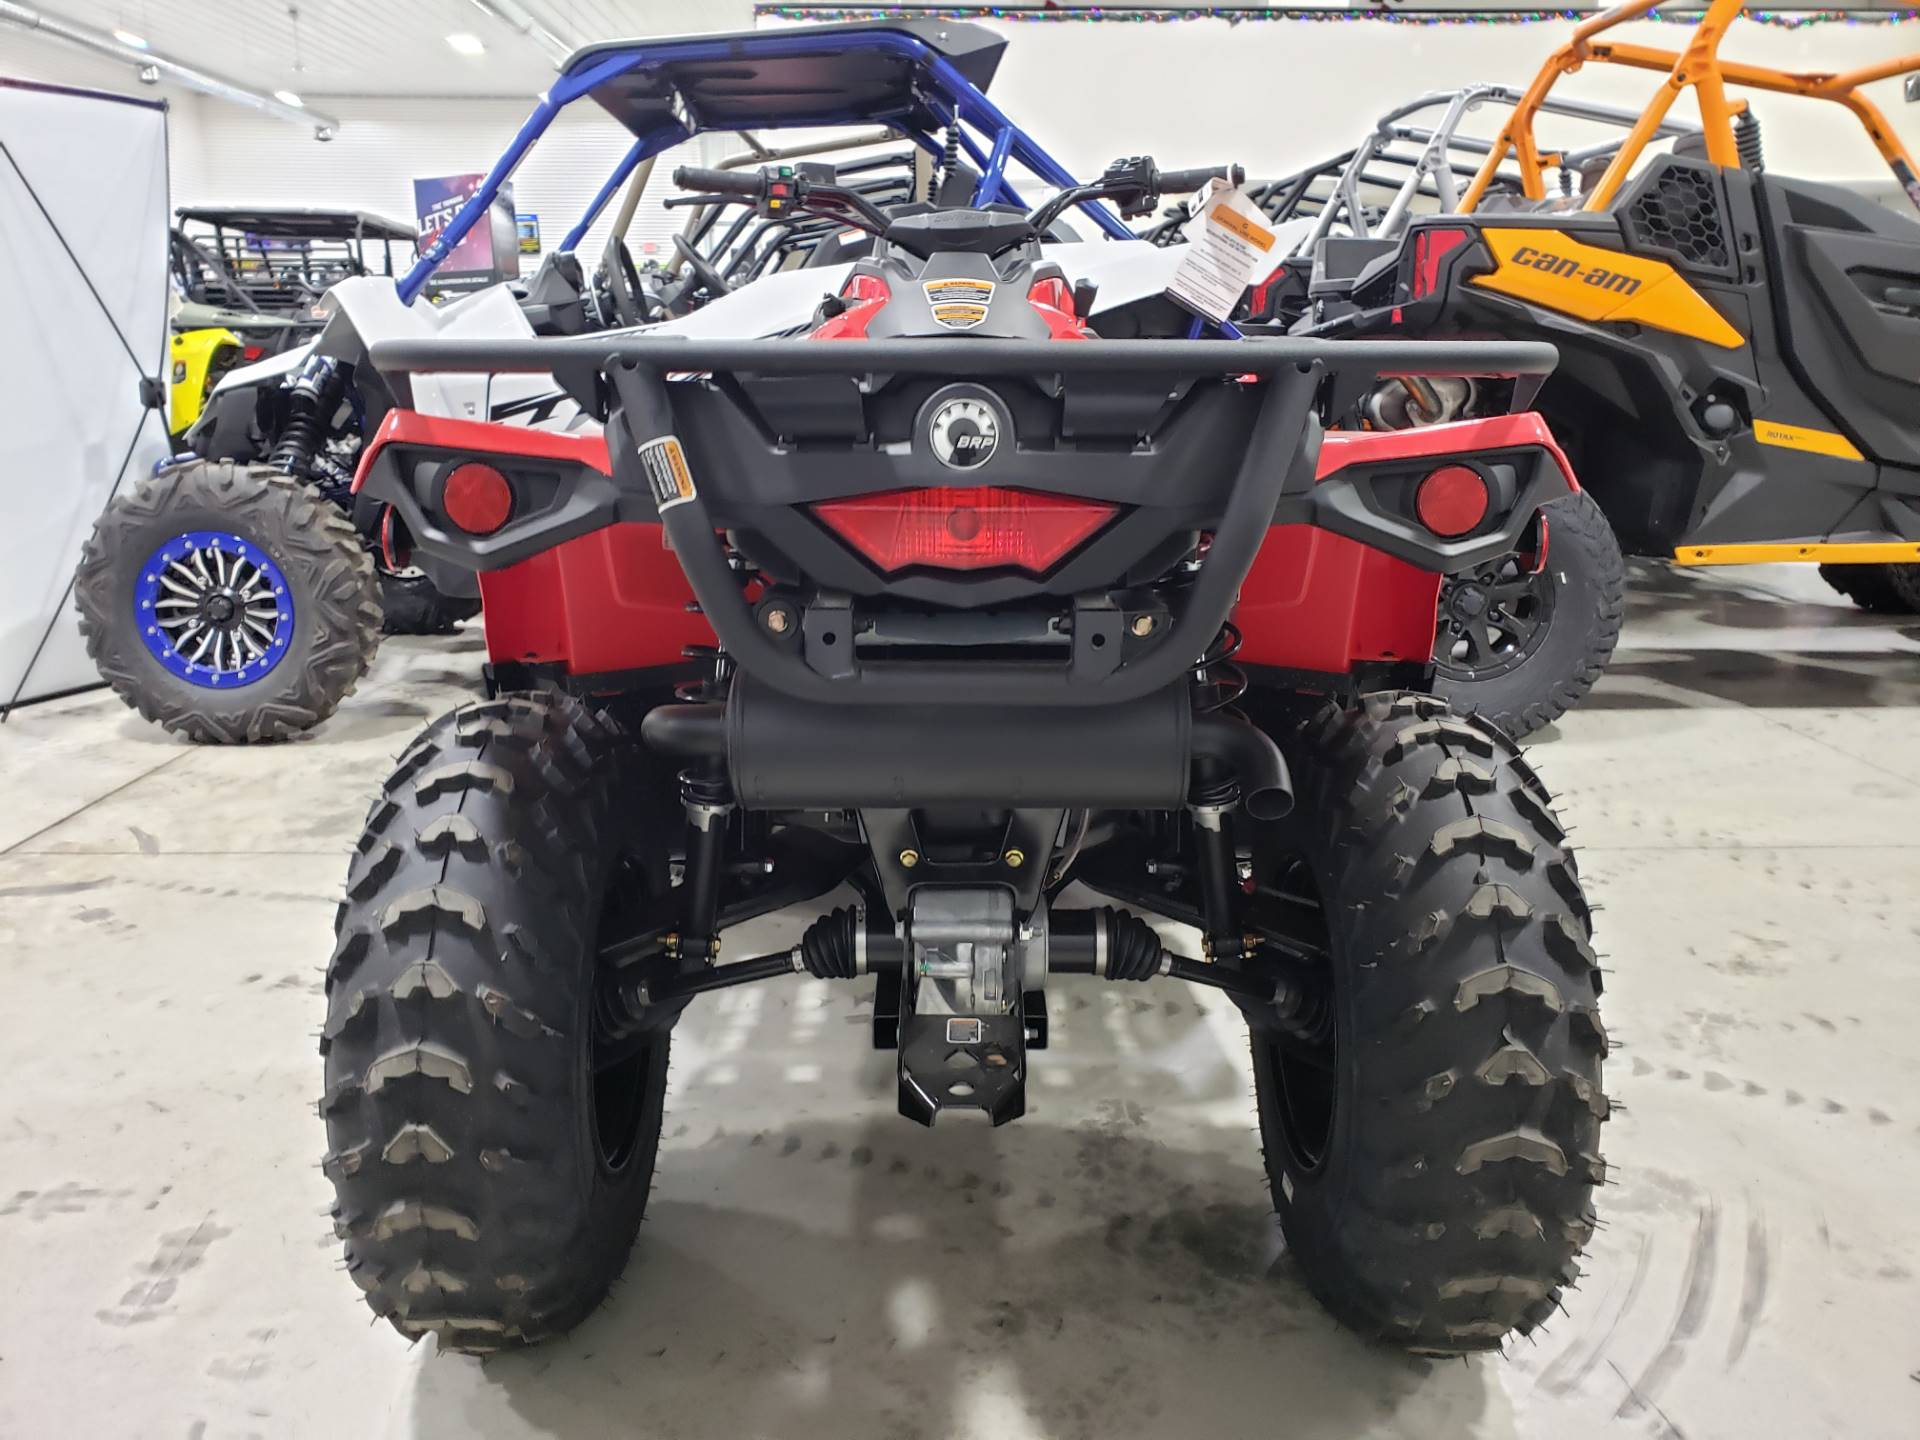 2020 Can-Am Outlander 450 in Cambridge, Ohio - Photo 4